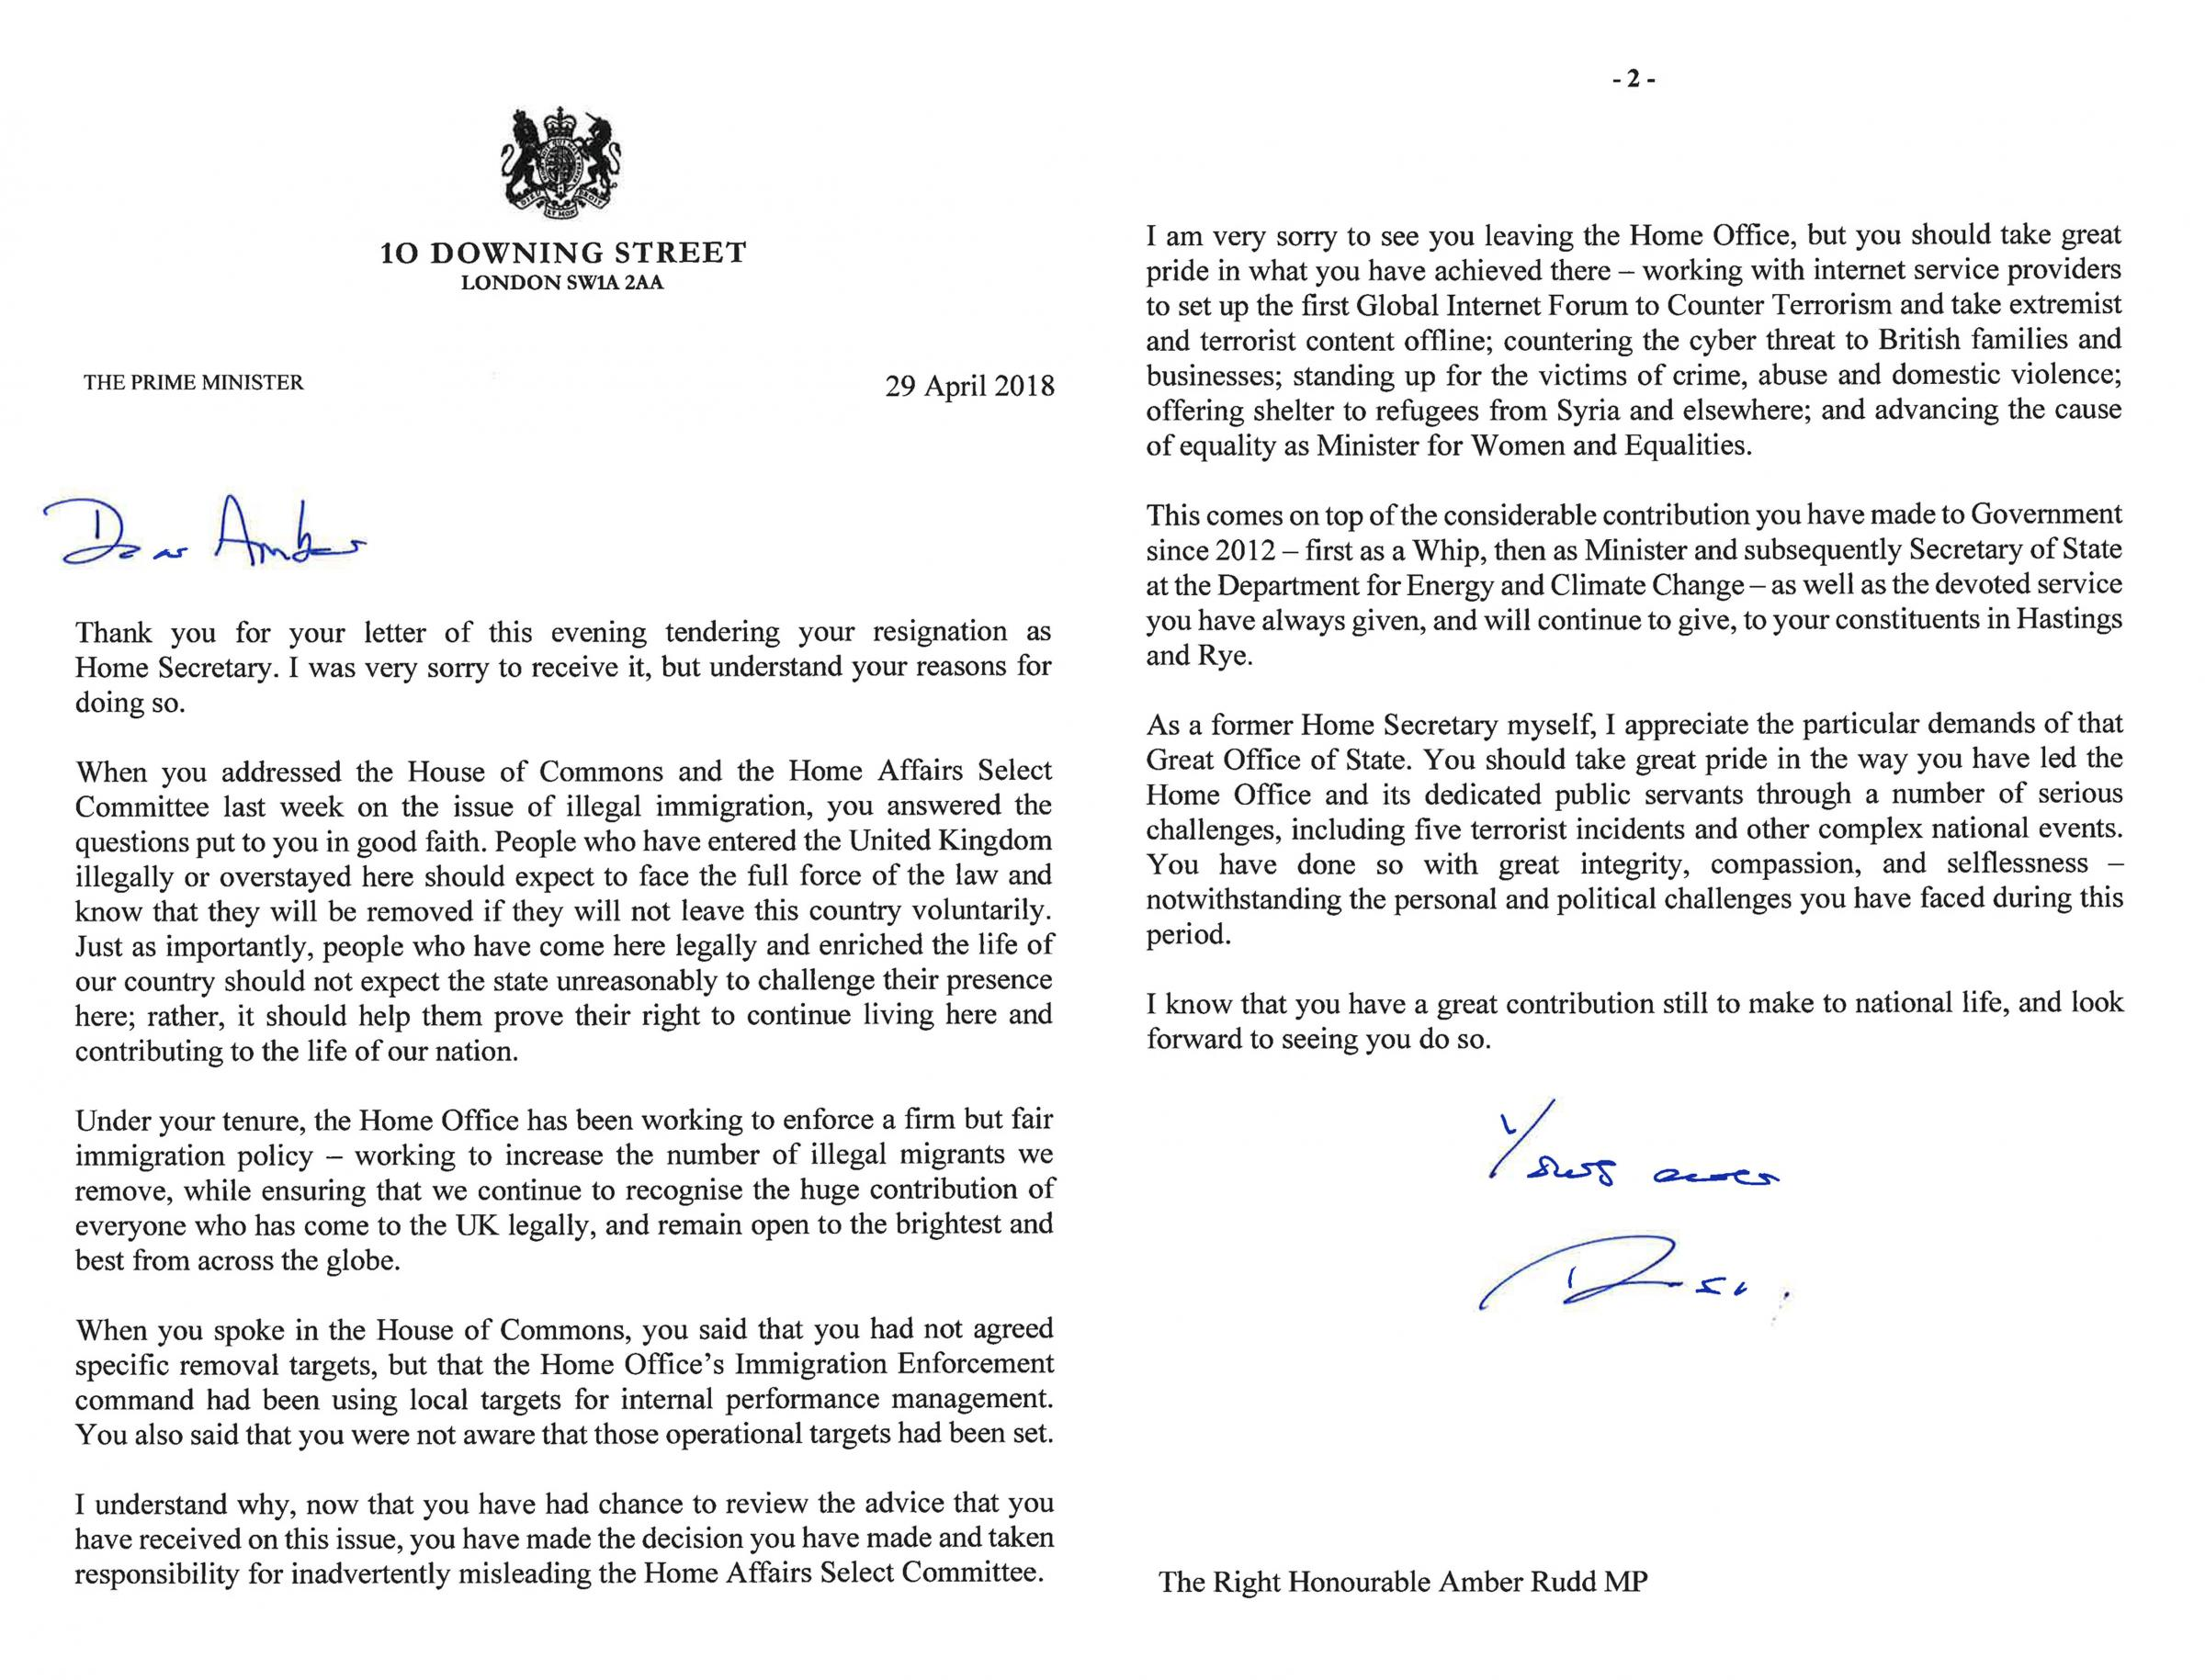 Theresa Mayu0027s Reply To Resignation Letter From Amber Rudd In Full